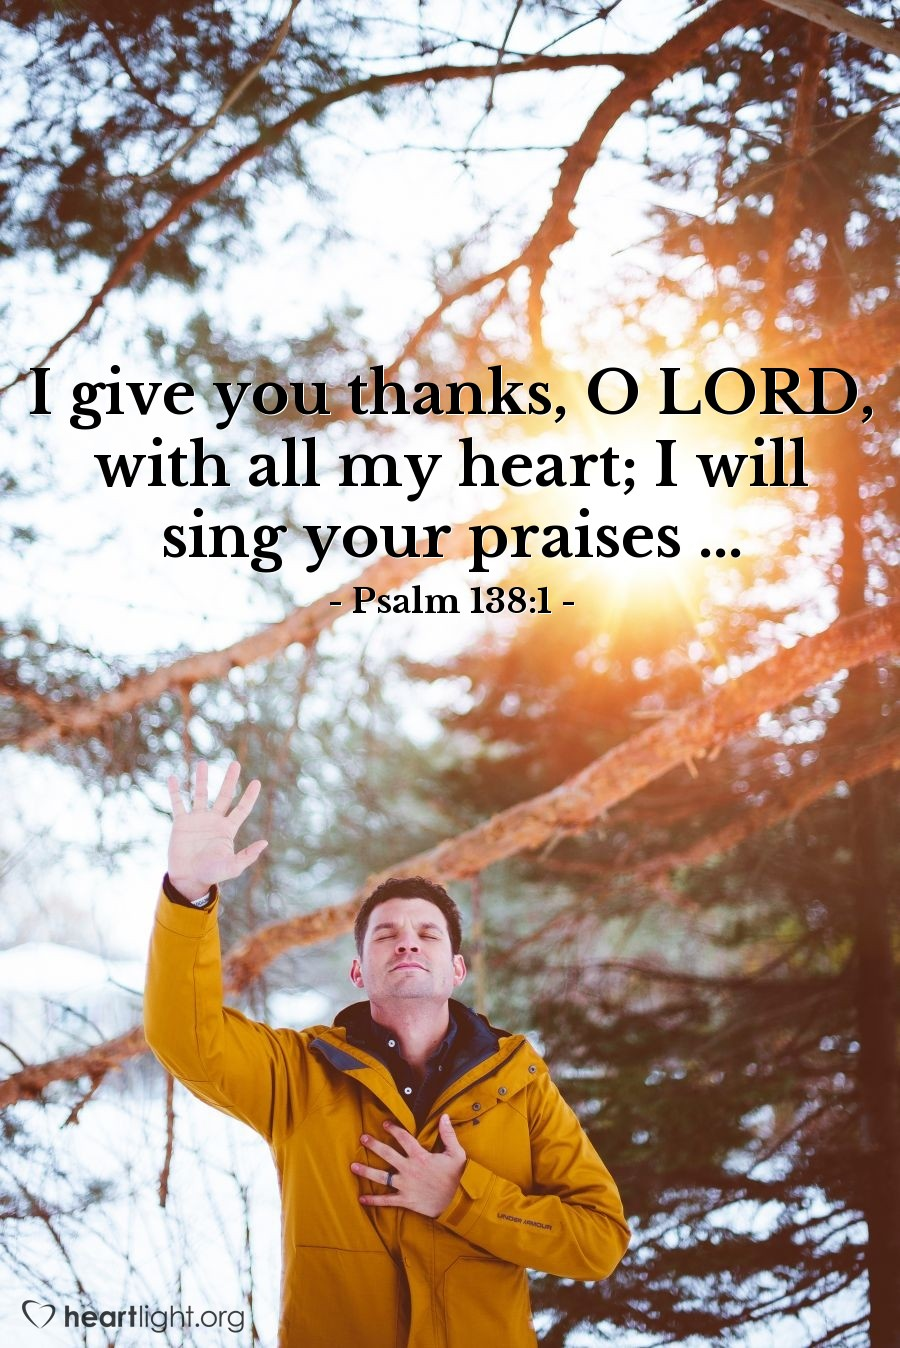 Illustration of Psalm 138:1 — I give you thanks, O LORD, with all my heart; I will sing your praises ...